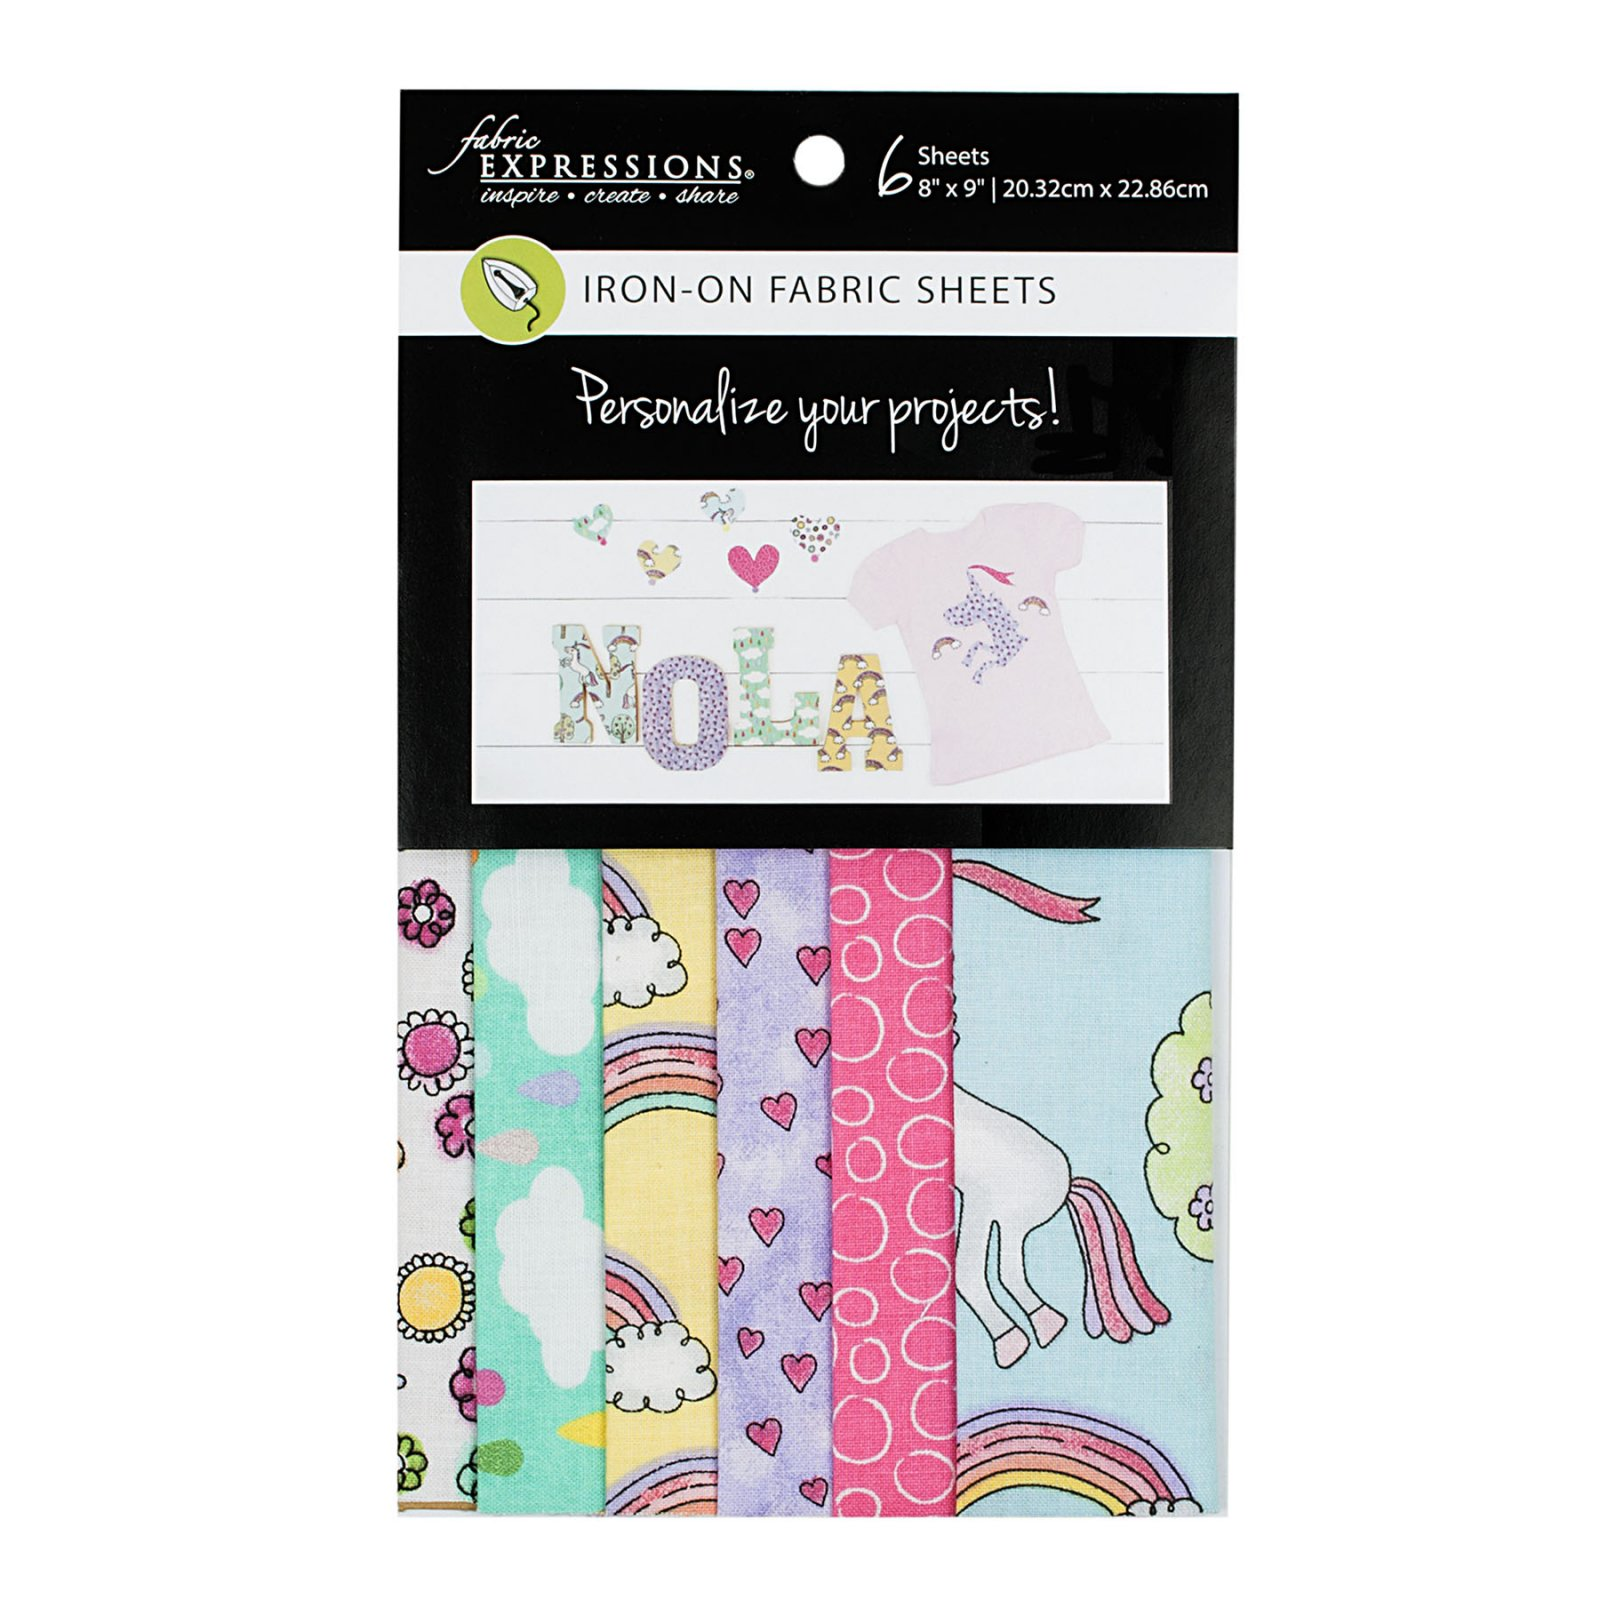 Fabric Expressions<br>6pc Iron-on Fabric Sheets - 8 x 9<br>Magical Unicorn<br>FE-FS-GRP6